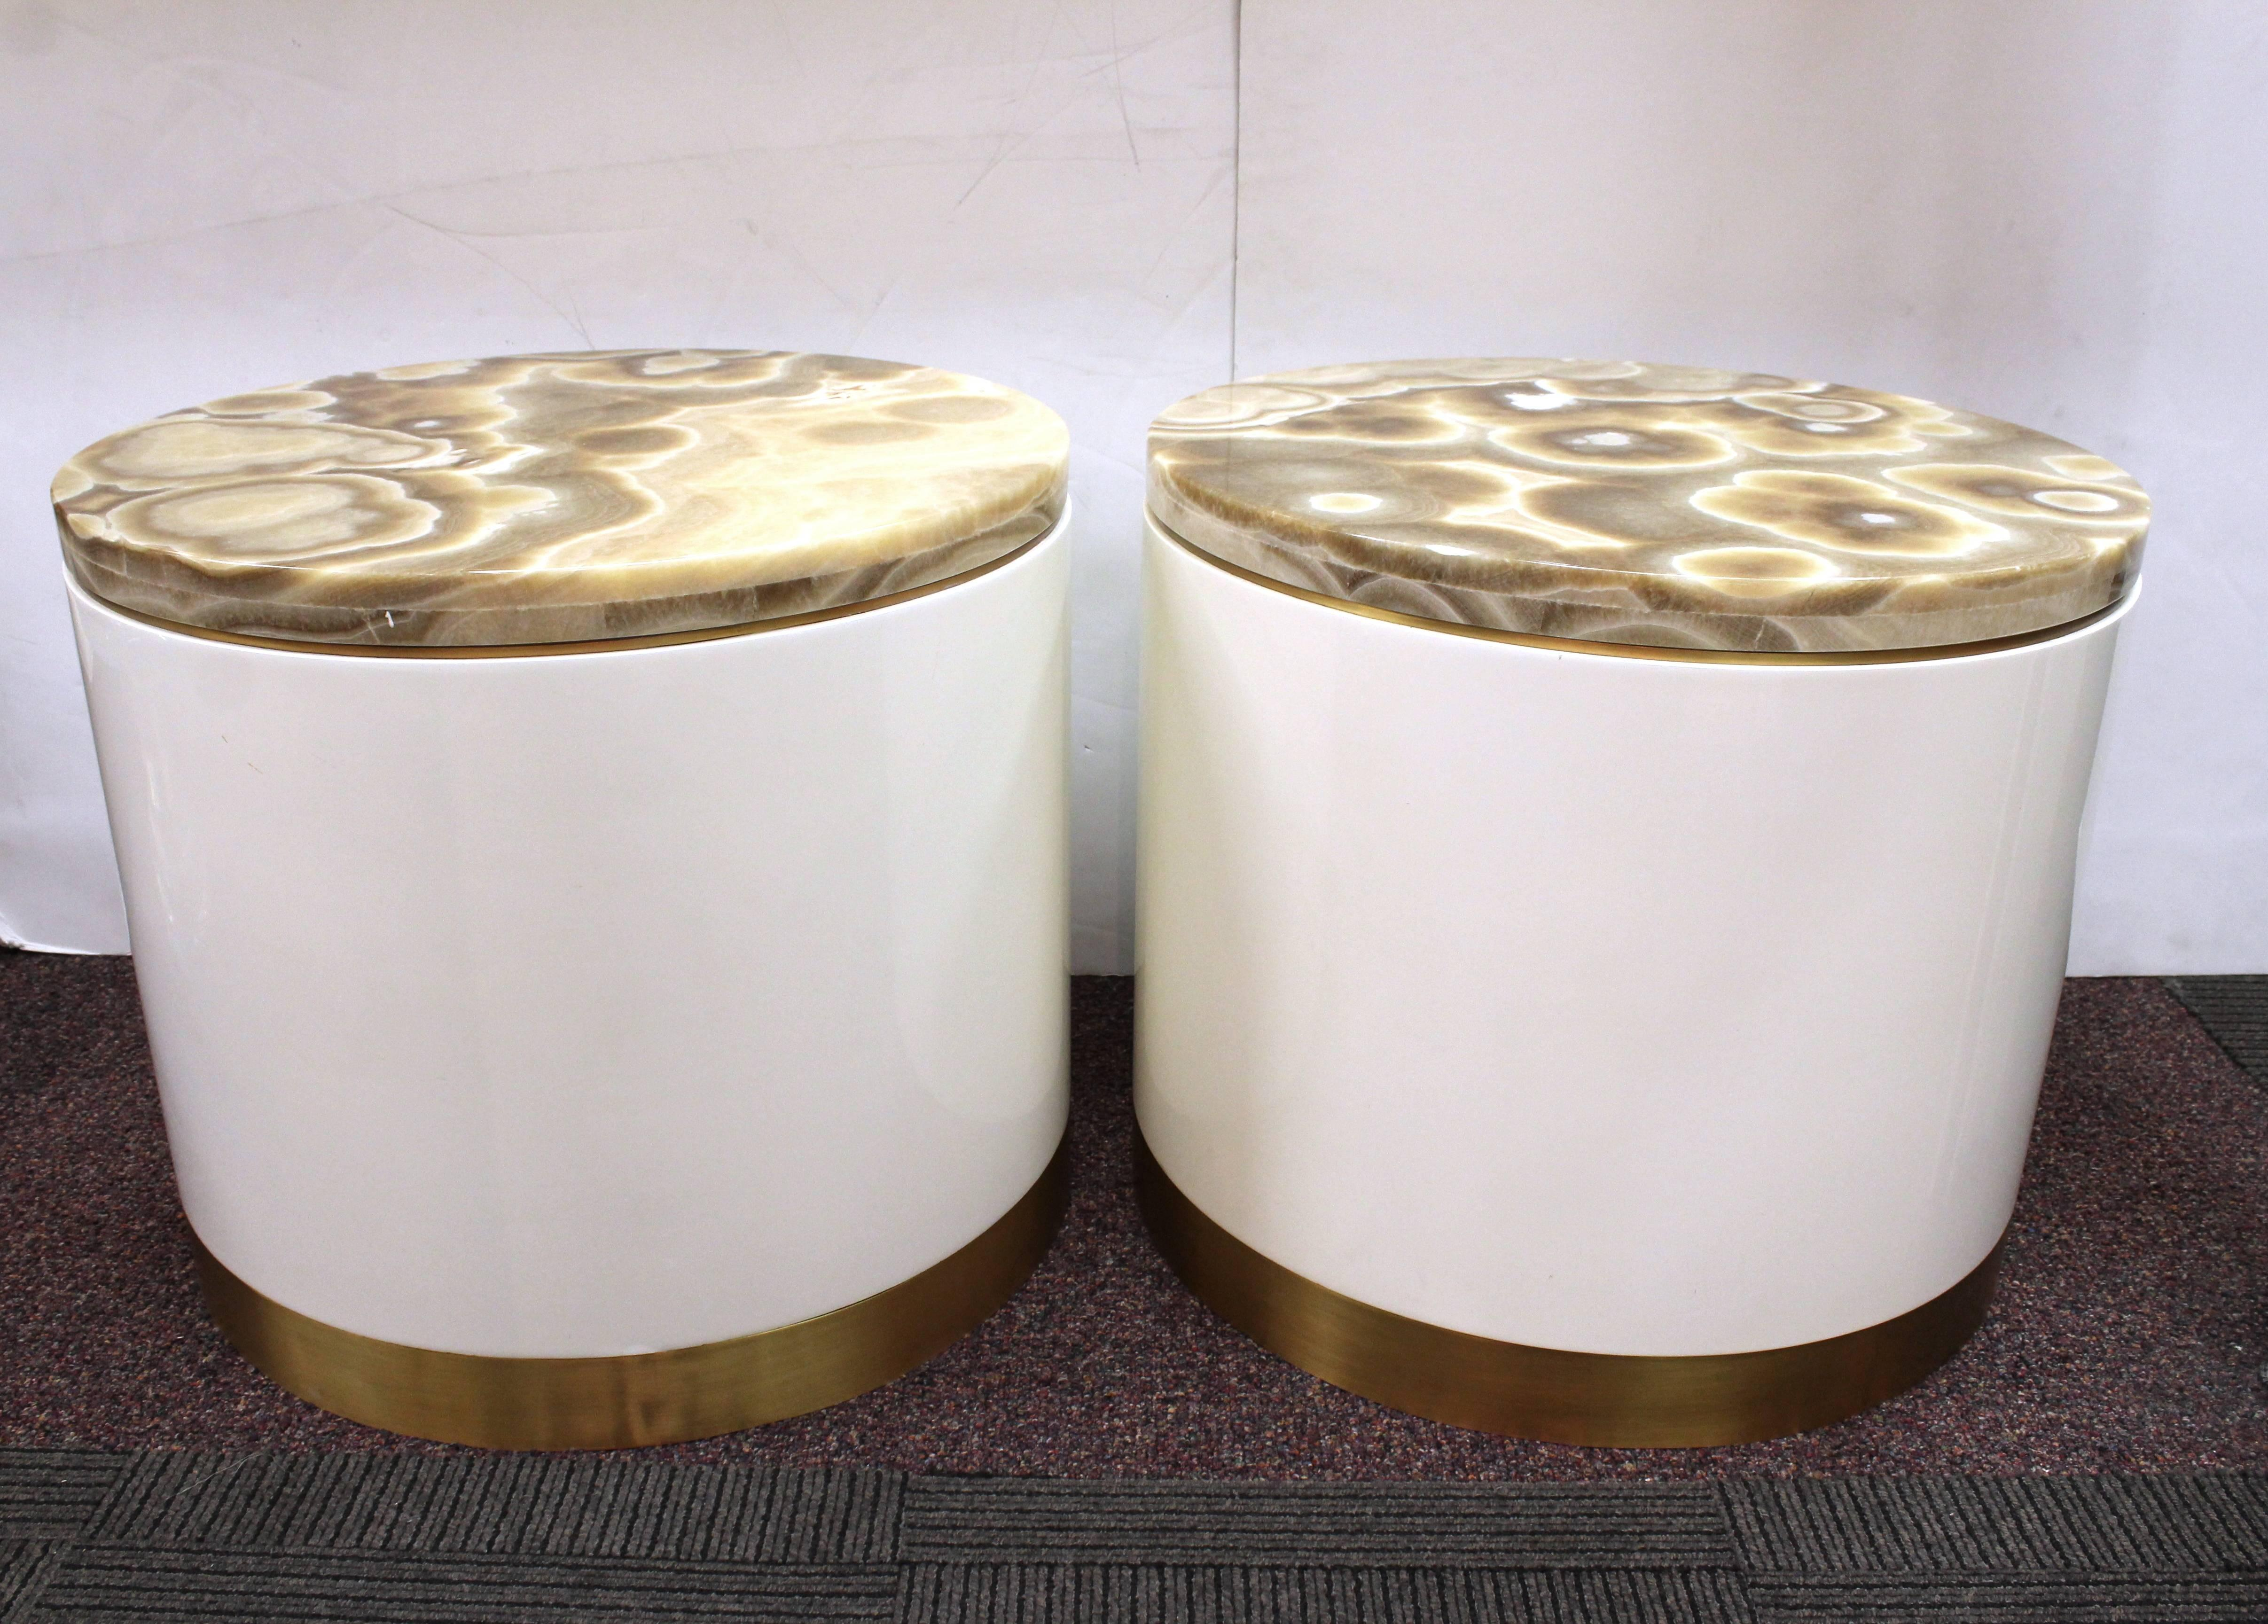 decoration metal drum accent table pair mid century modern white tables with circular marble tops side ikea box unit black contemporary end sofa wheels navy blue coffee vintage